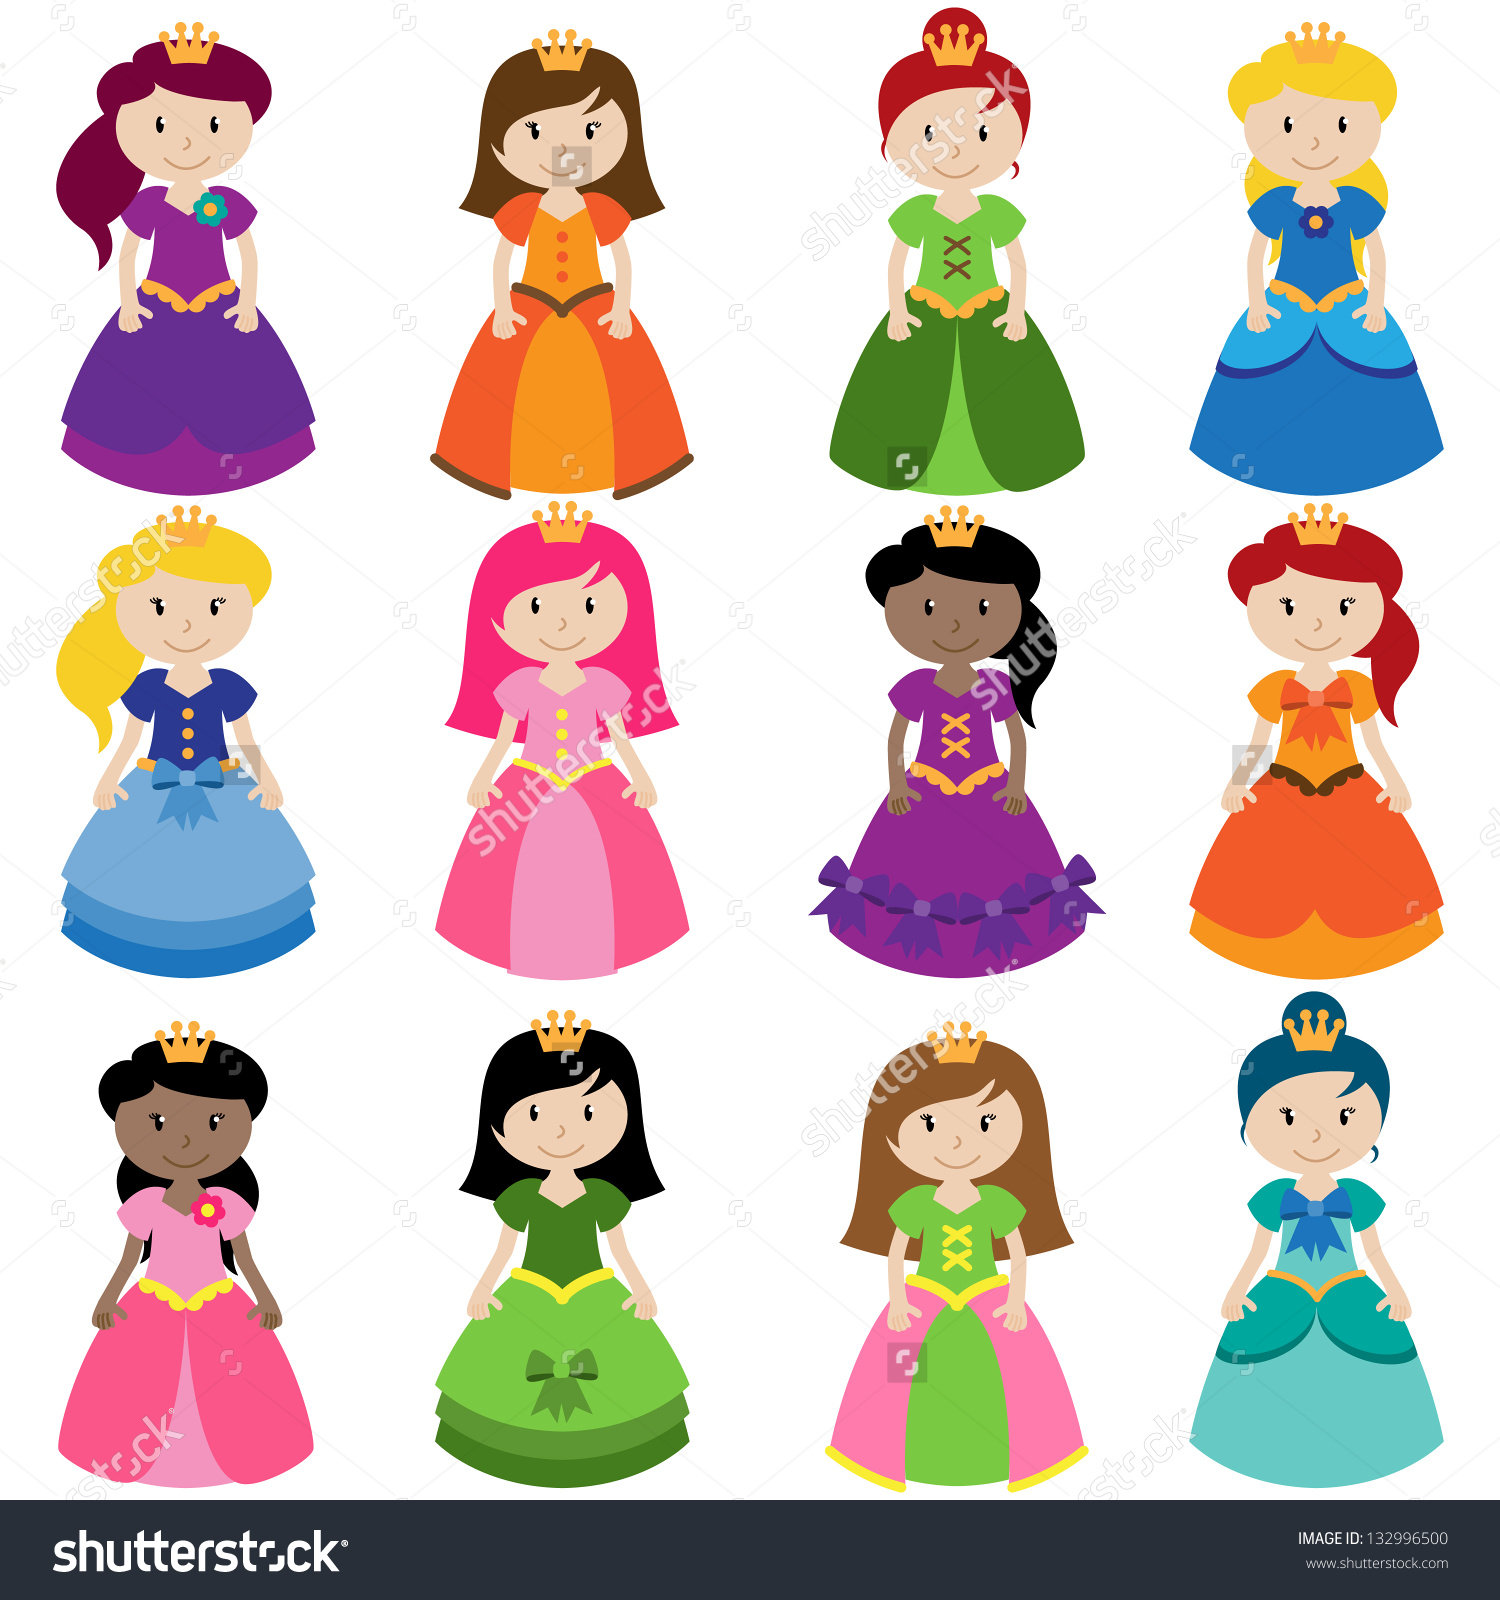 Cute Princess Stock Vectors & Vector Clip Art.